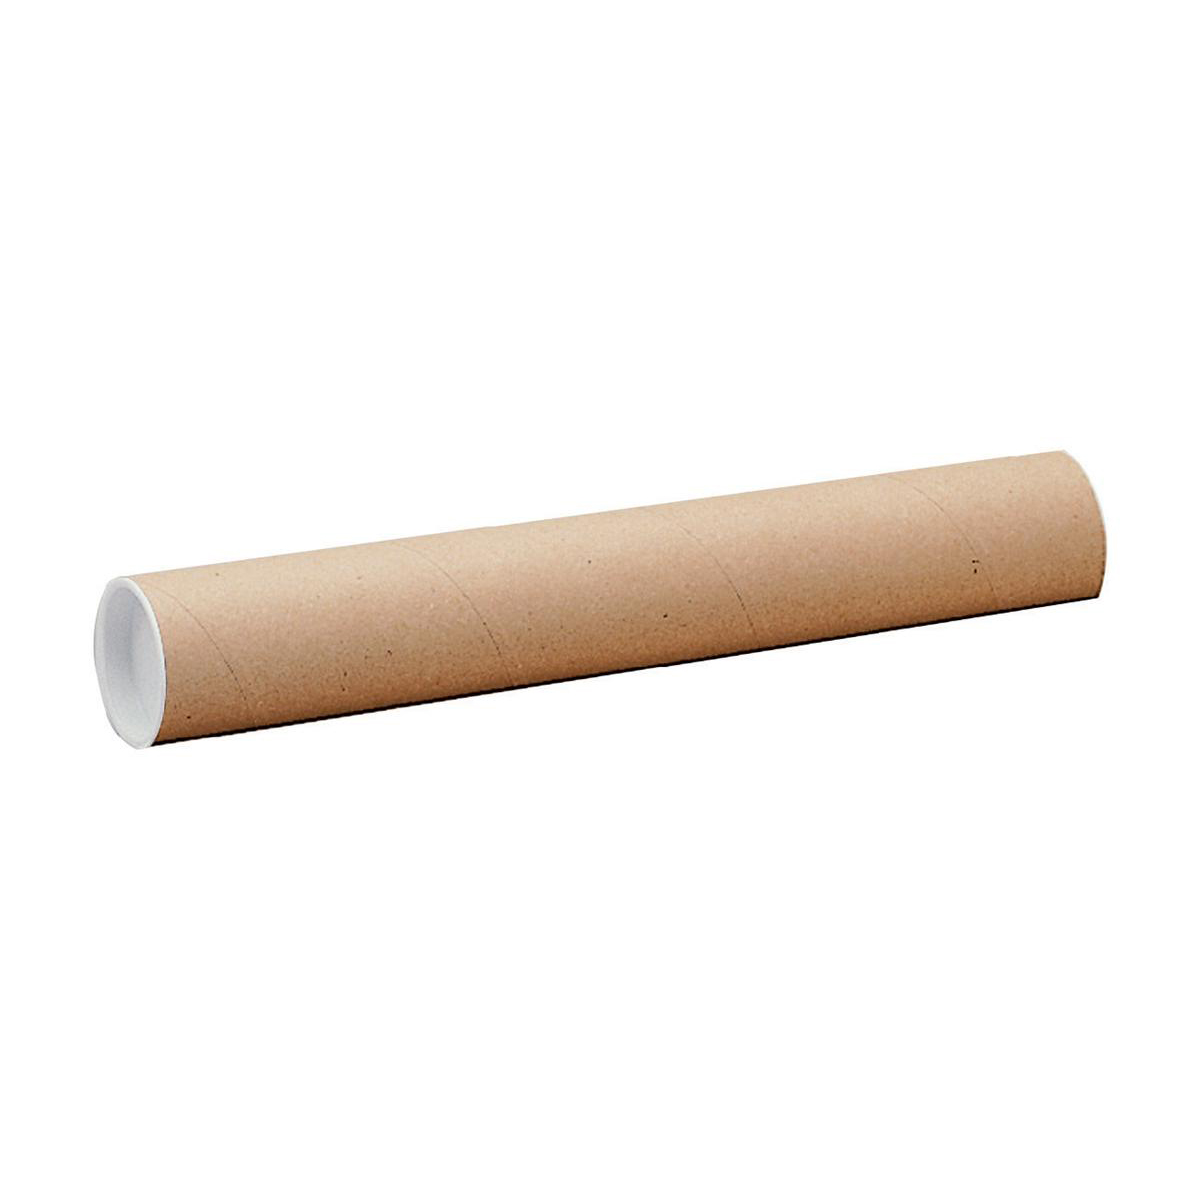 Postal Tube Cardboard with Plastic End Caps L610xDia.76mm PT?610/76MM Pack 12